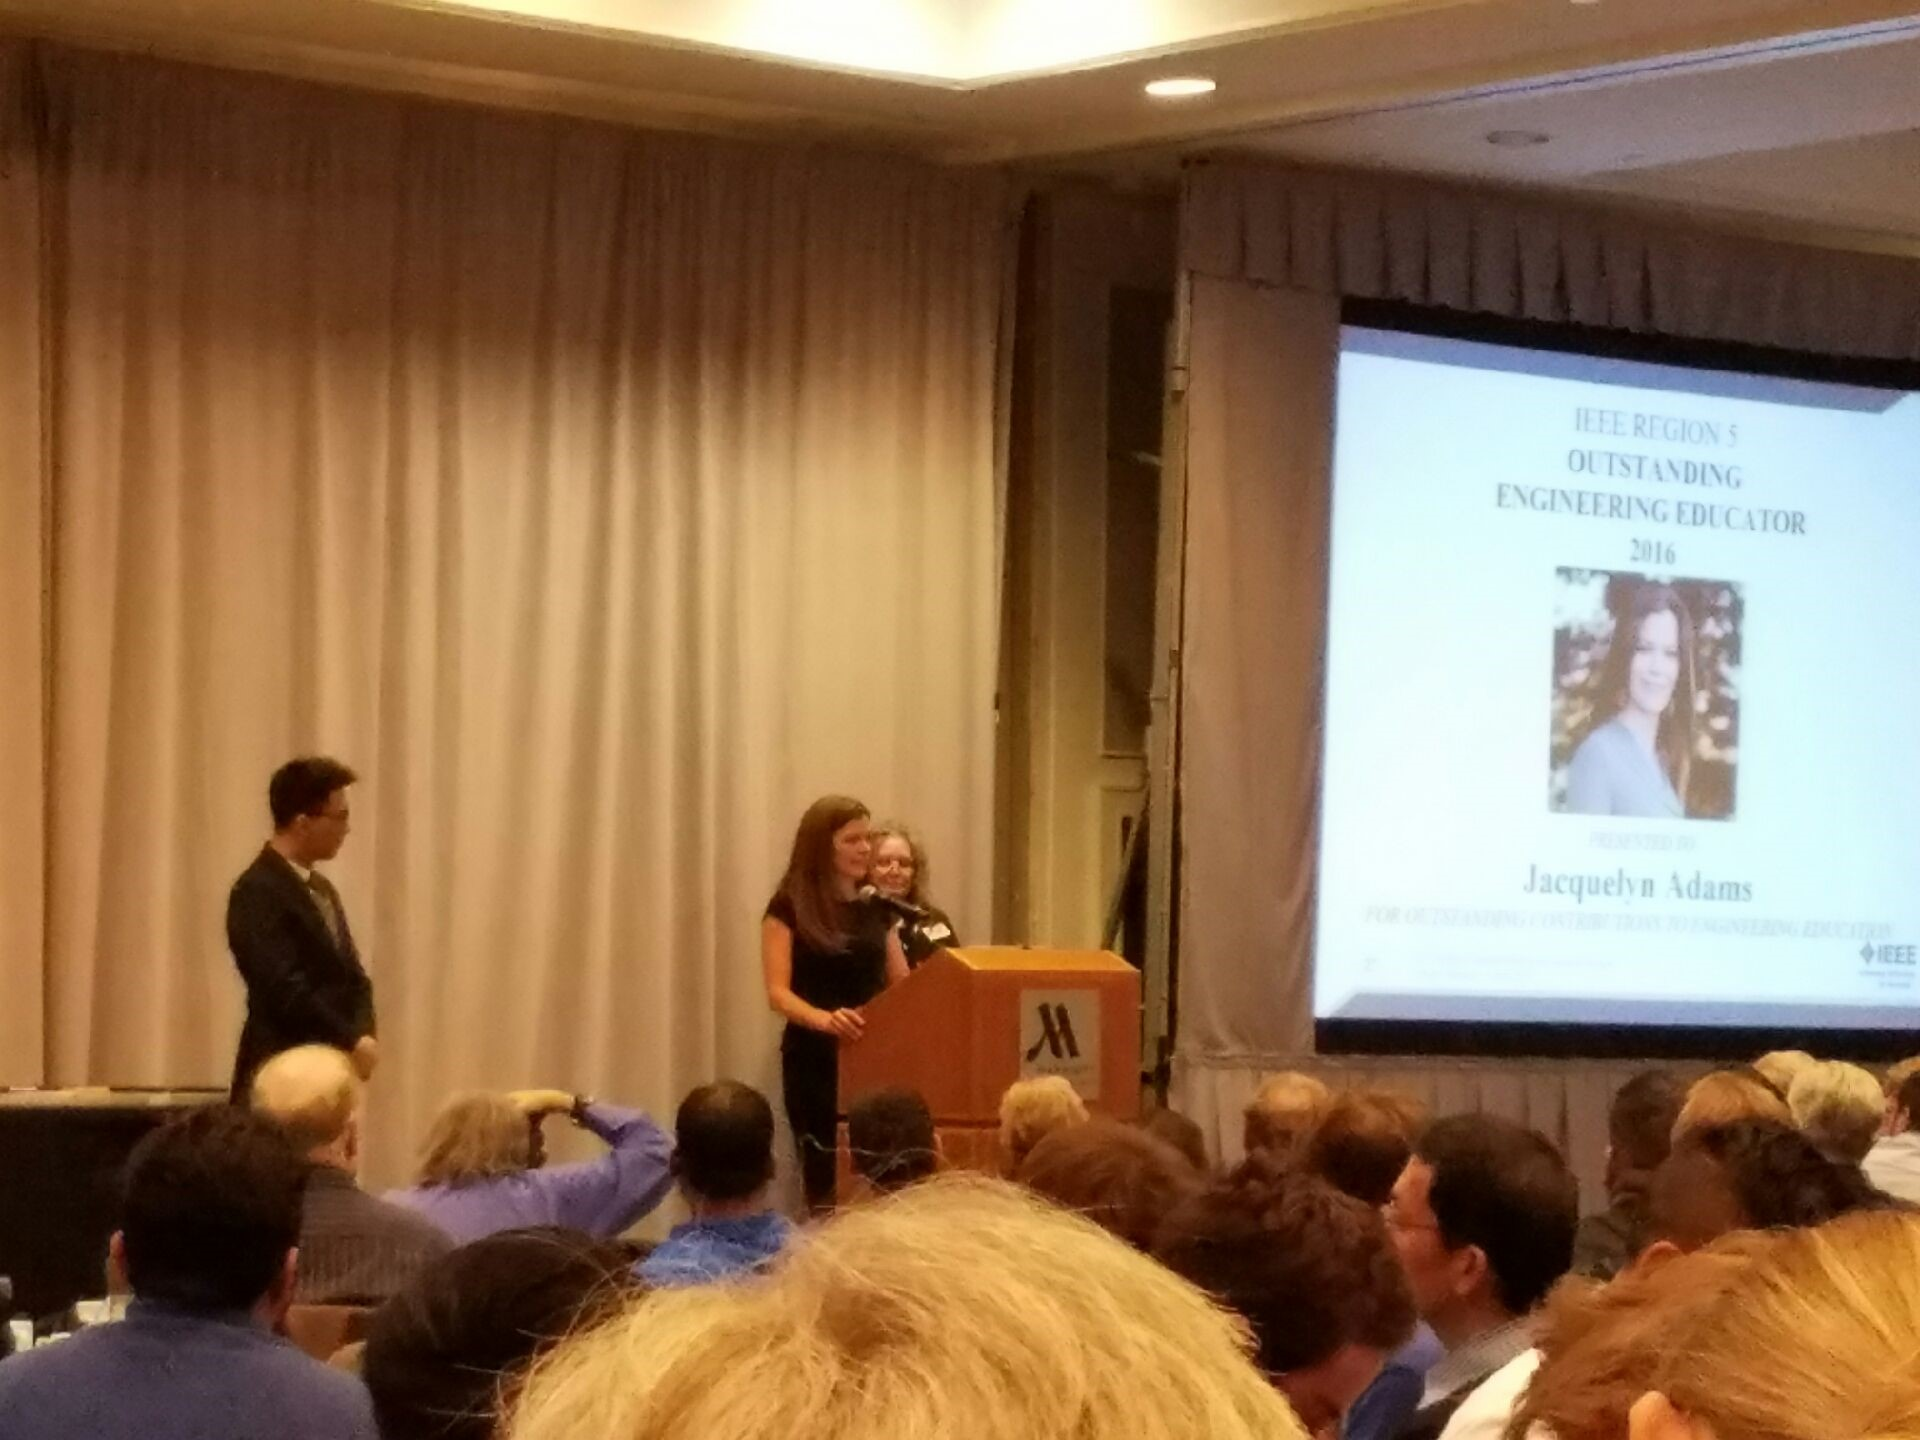 Jackie giving her acceptance speech at the IEEE Awards Banquet on April 1st, 2017.